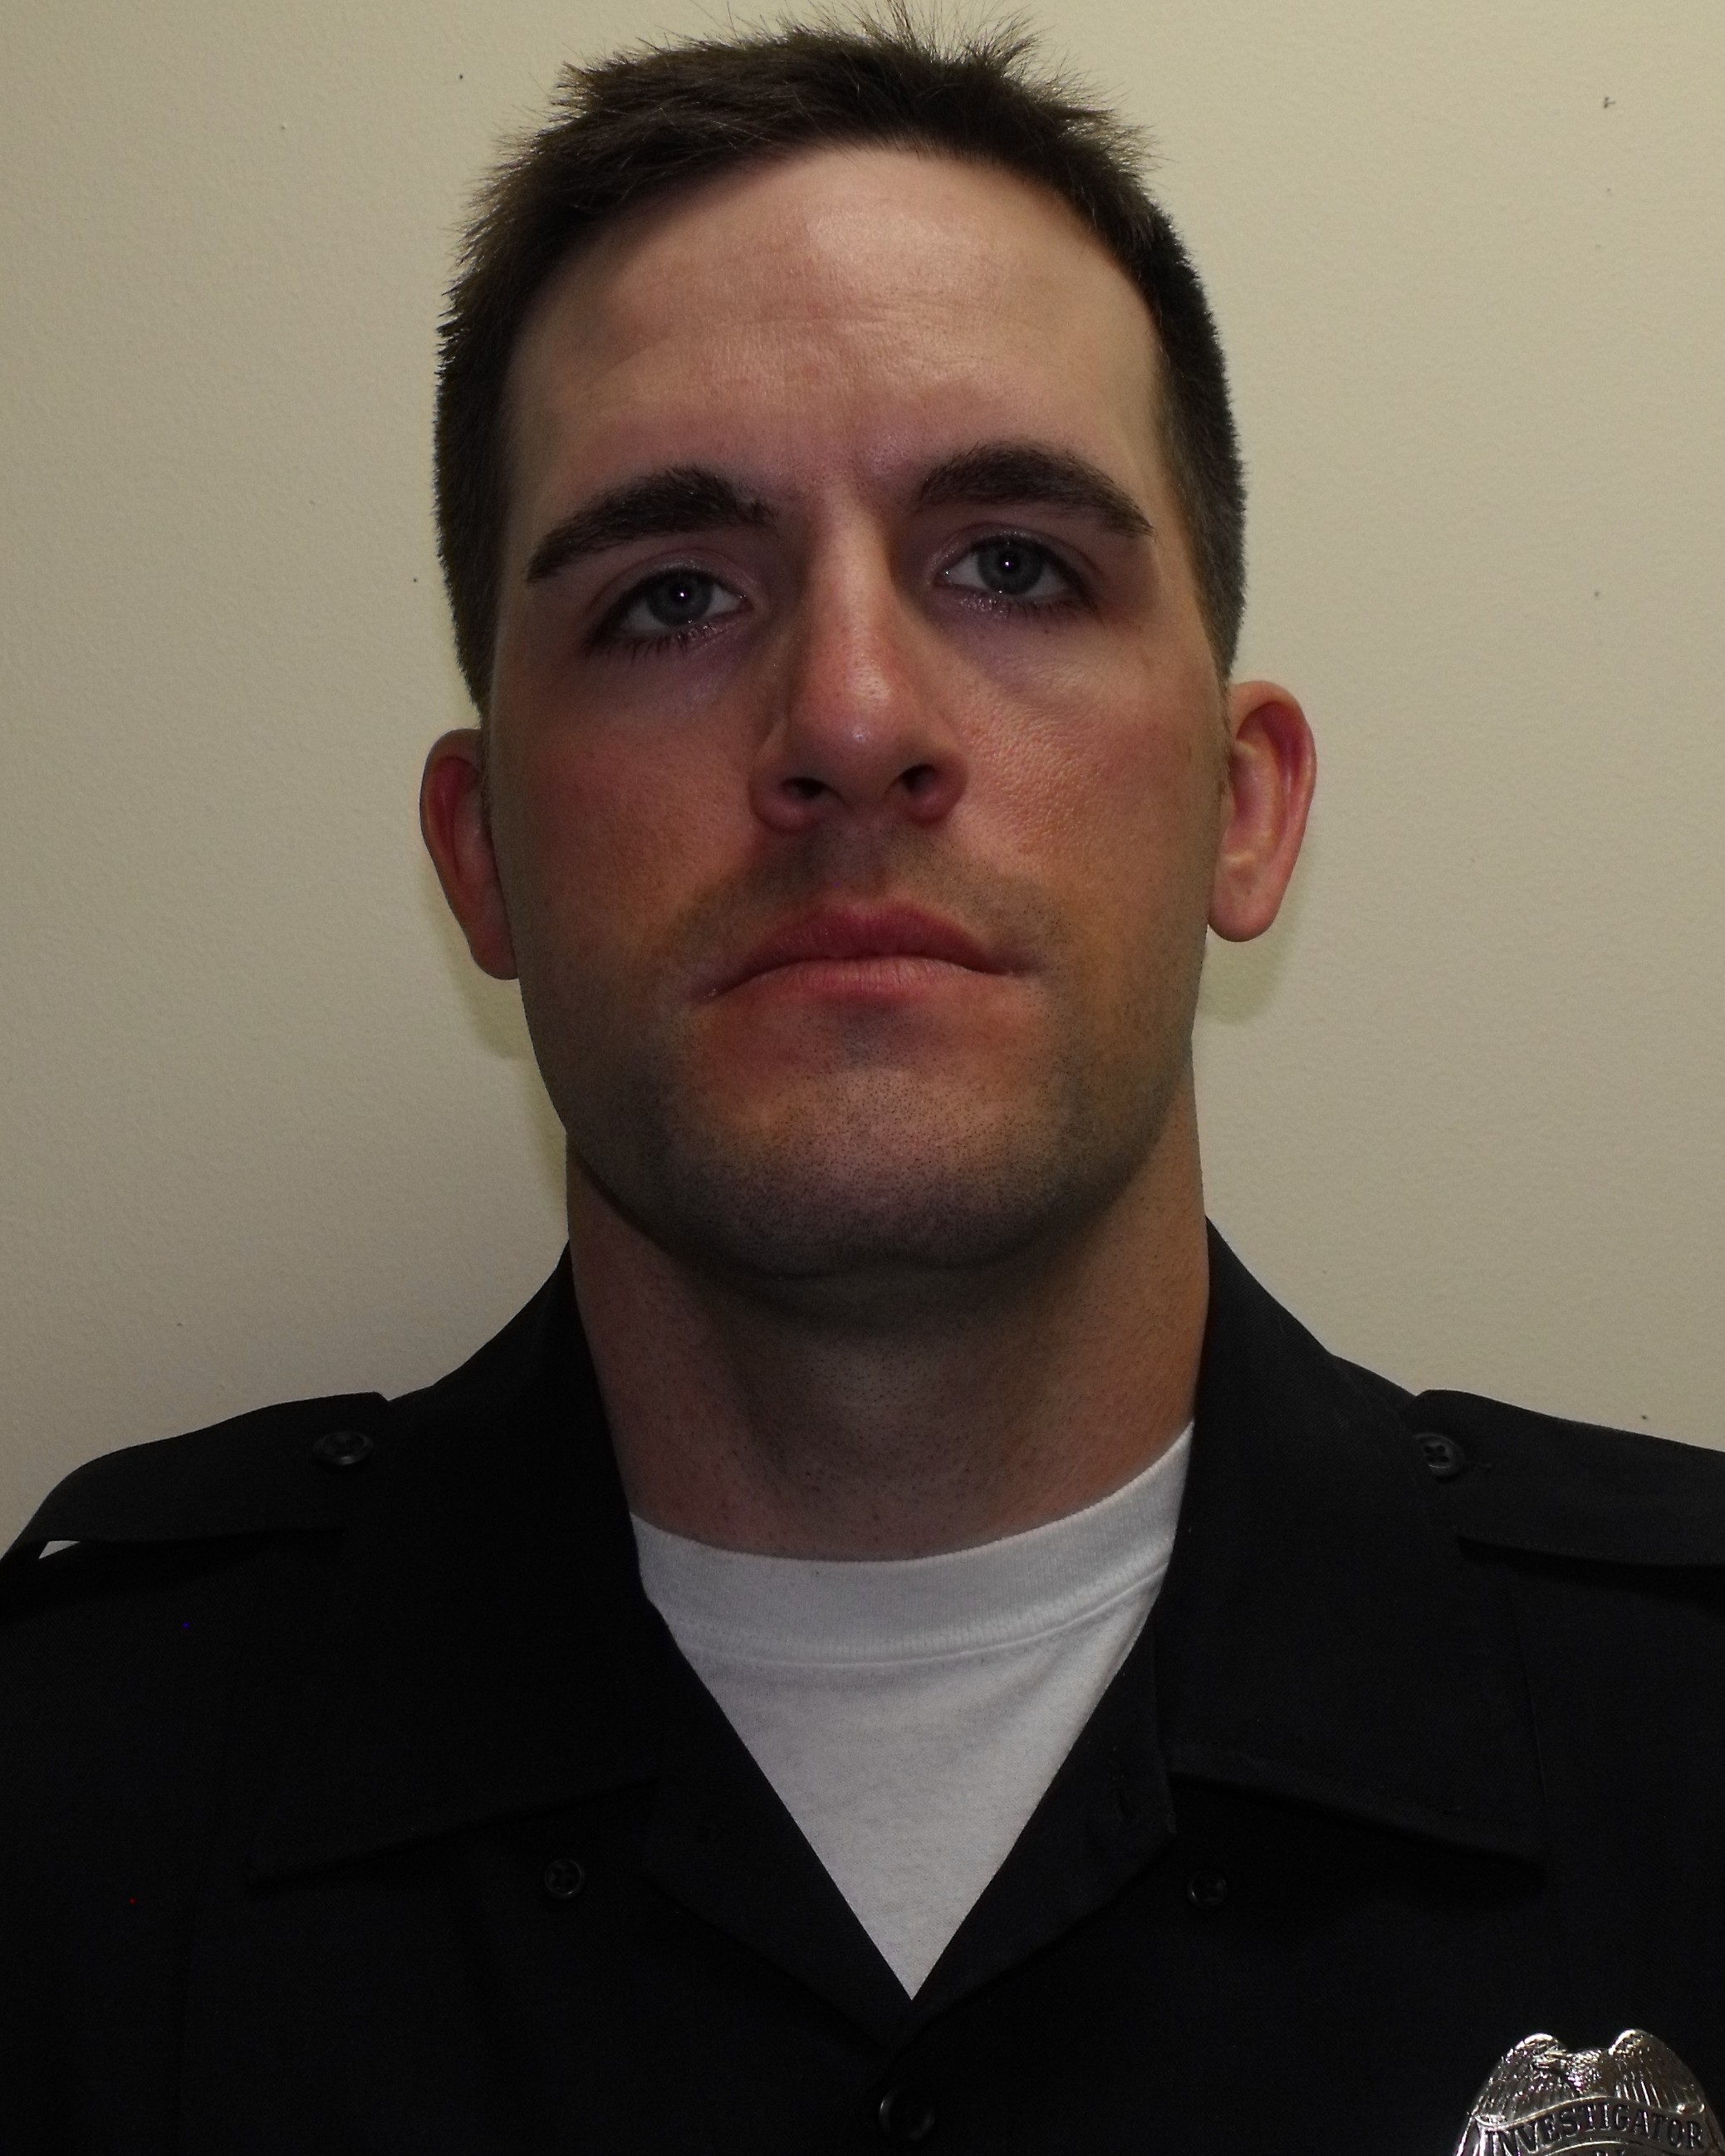 K9 Officer Ryan Patrick Copeland | McFarland Police Department, Wisconsin